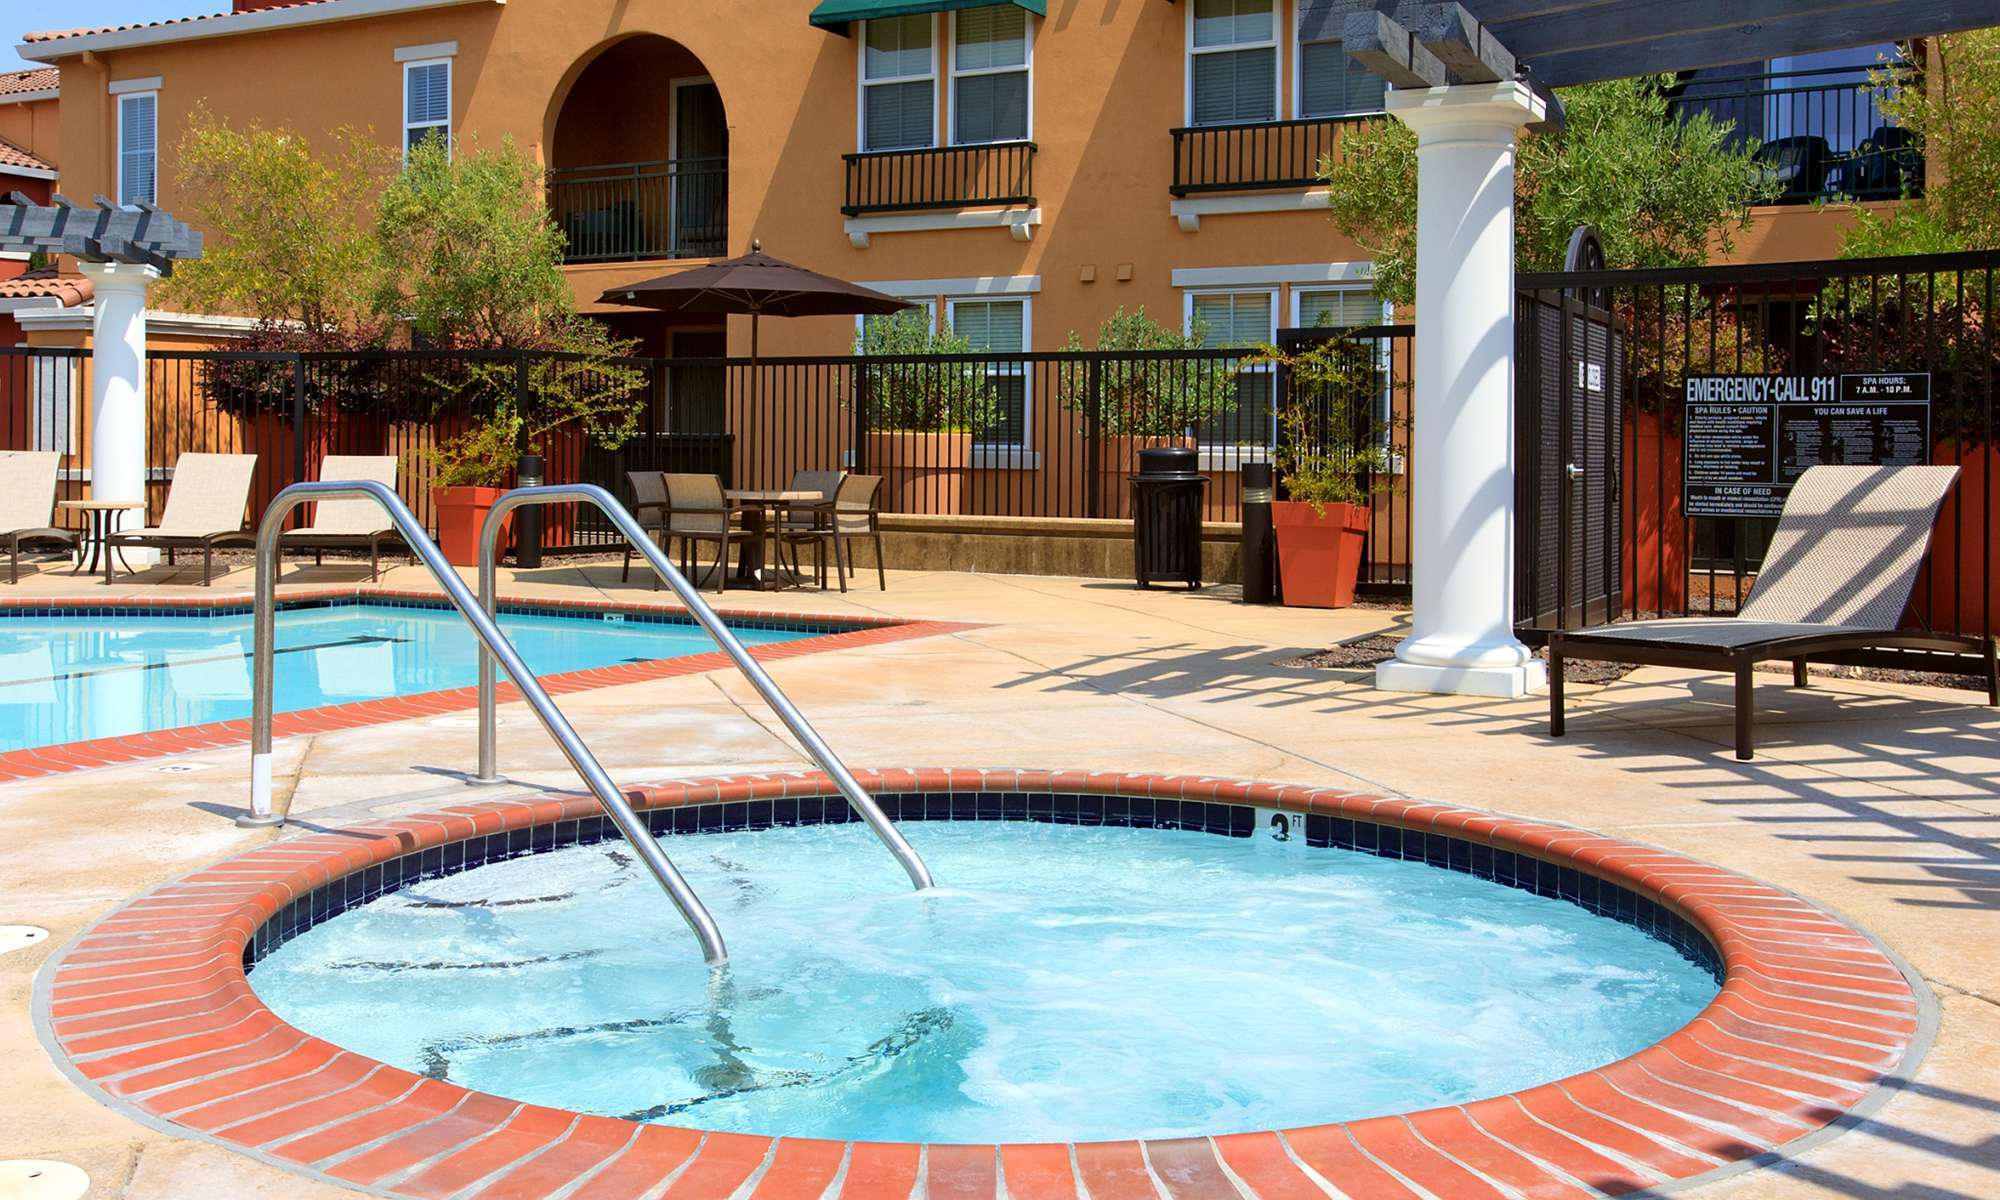 Santa Rosa Apartments Have a Relaxing Hot Tub